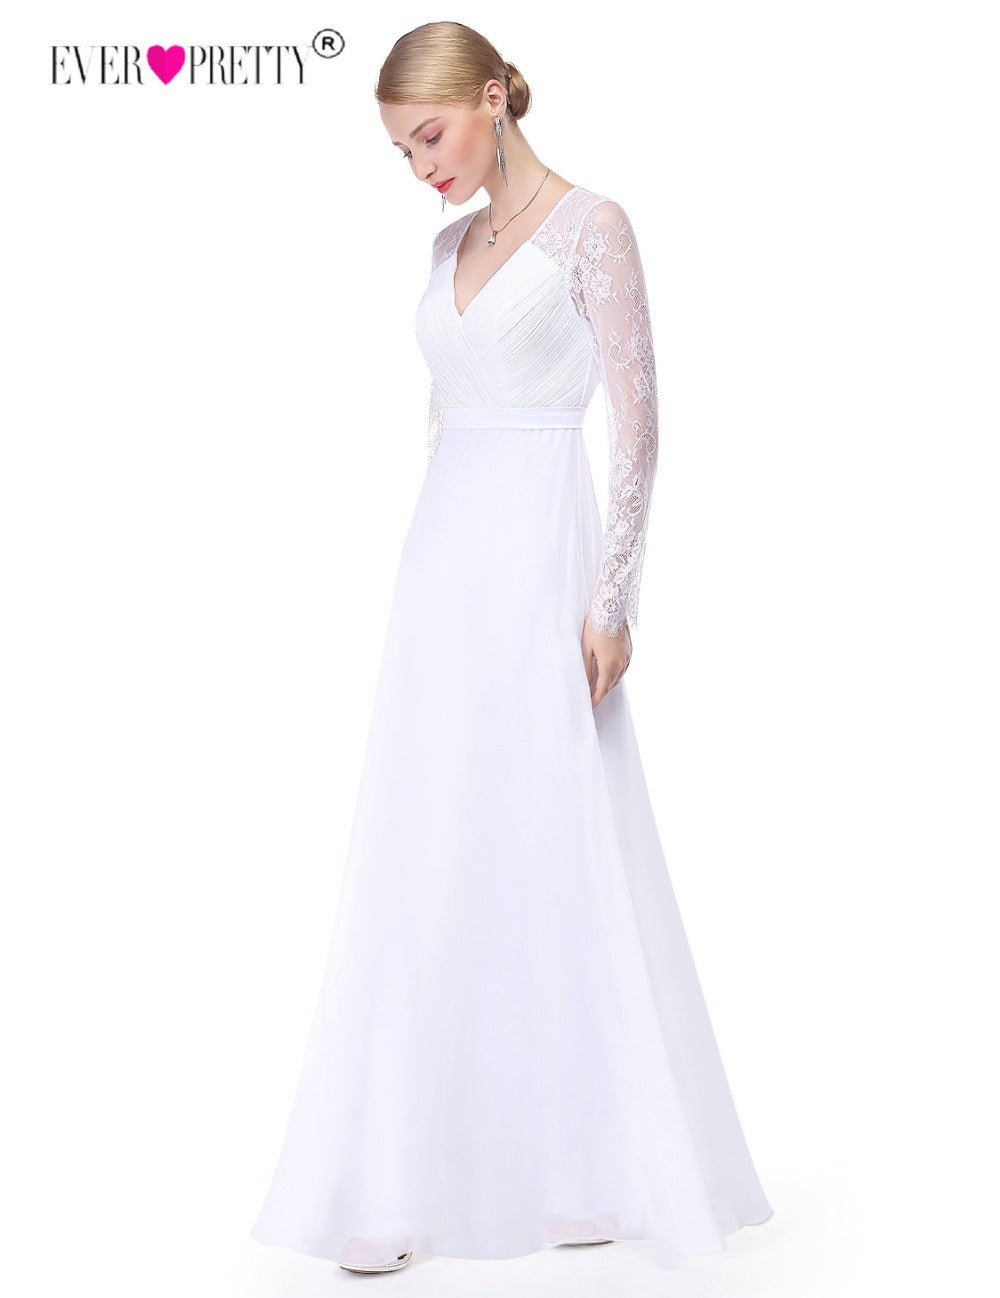 Lace Long Sleeved, V-Neck Wedding Dress